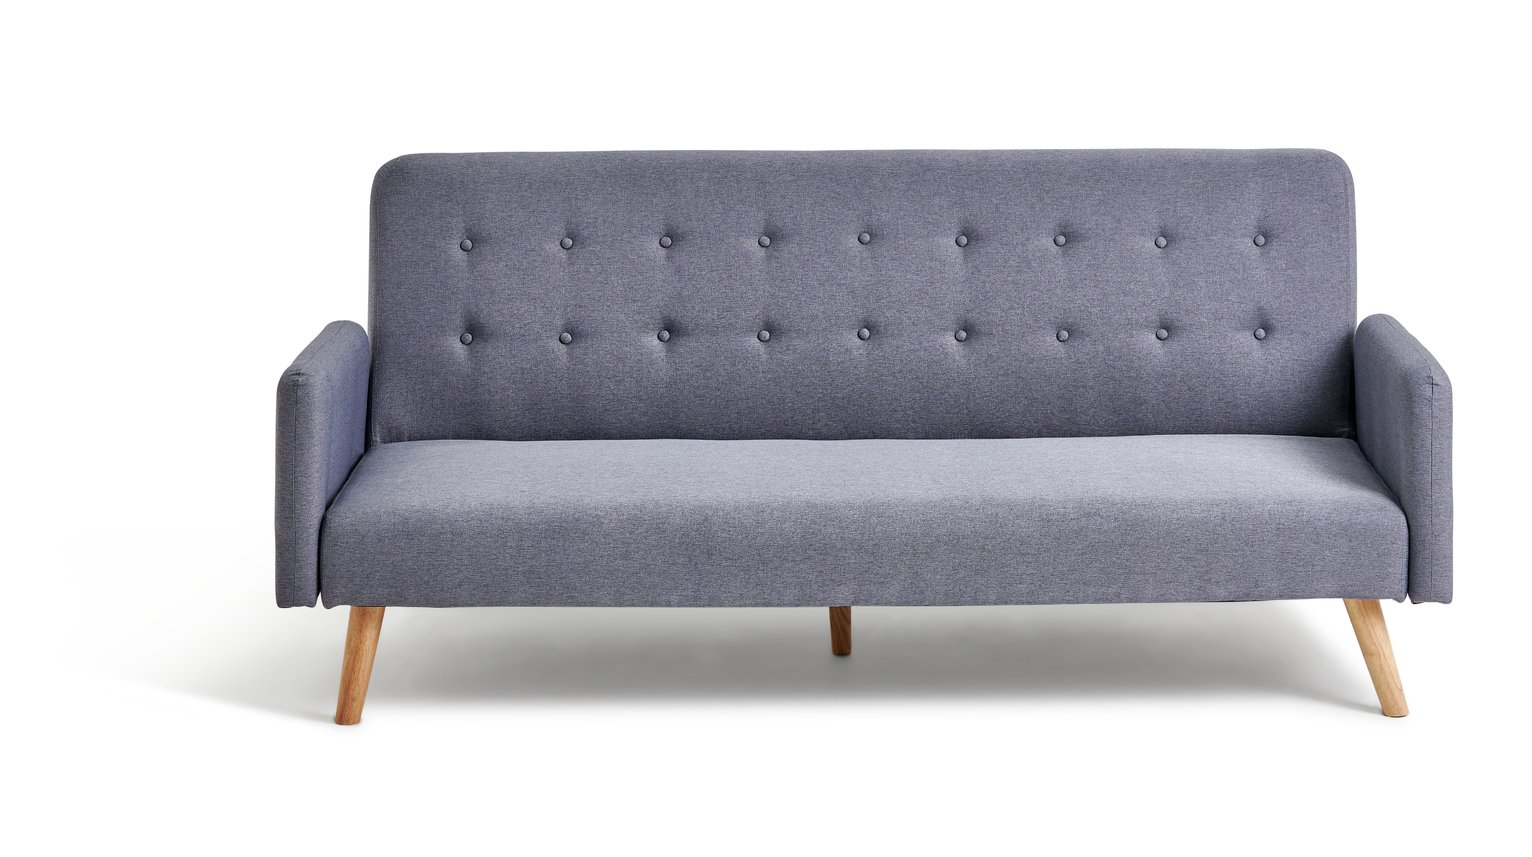 Sofas | Page 1 | Argos Price Tracker | pricehistory.co.uk on chaise sofa sleeper, chaise recliner chair, chaise furniture,